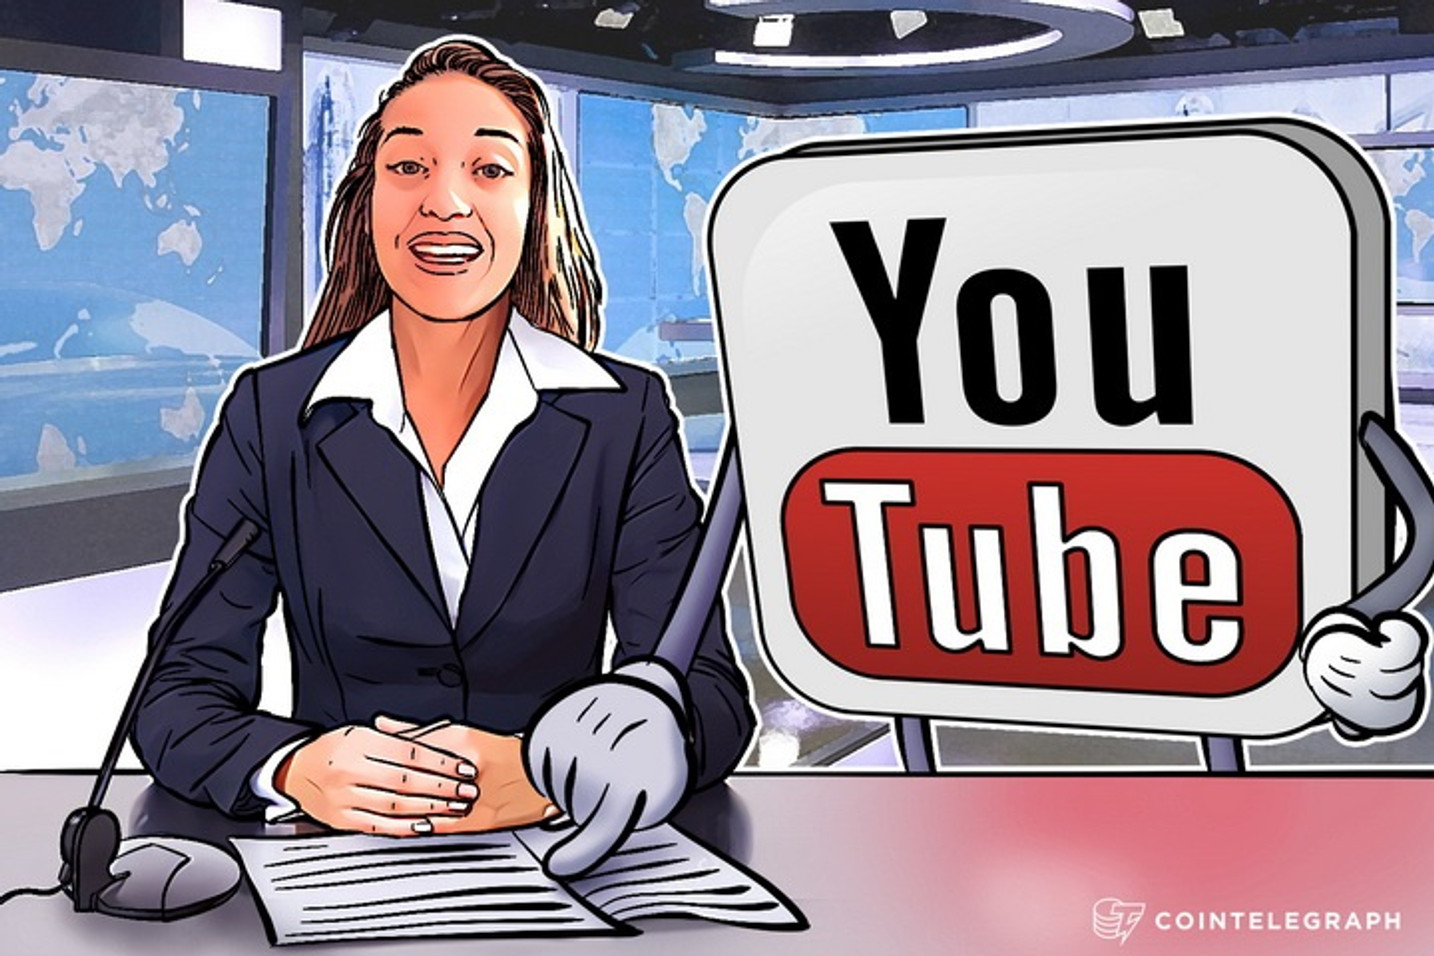 YouTube Threatens Blogger Over Tough Questions To The European Commission President